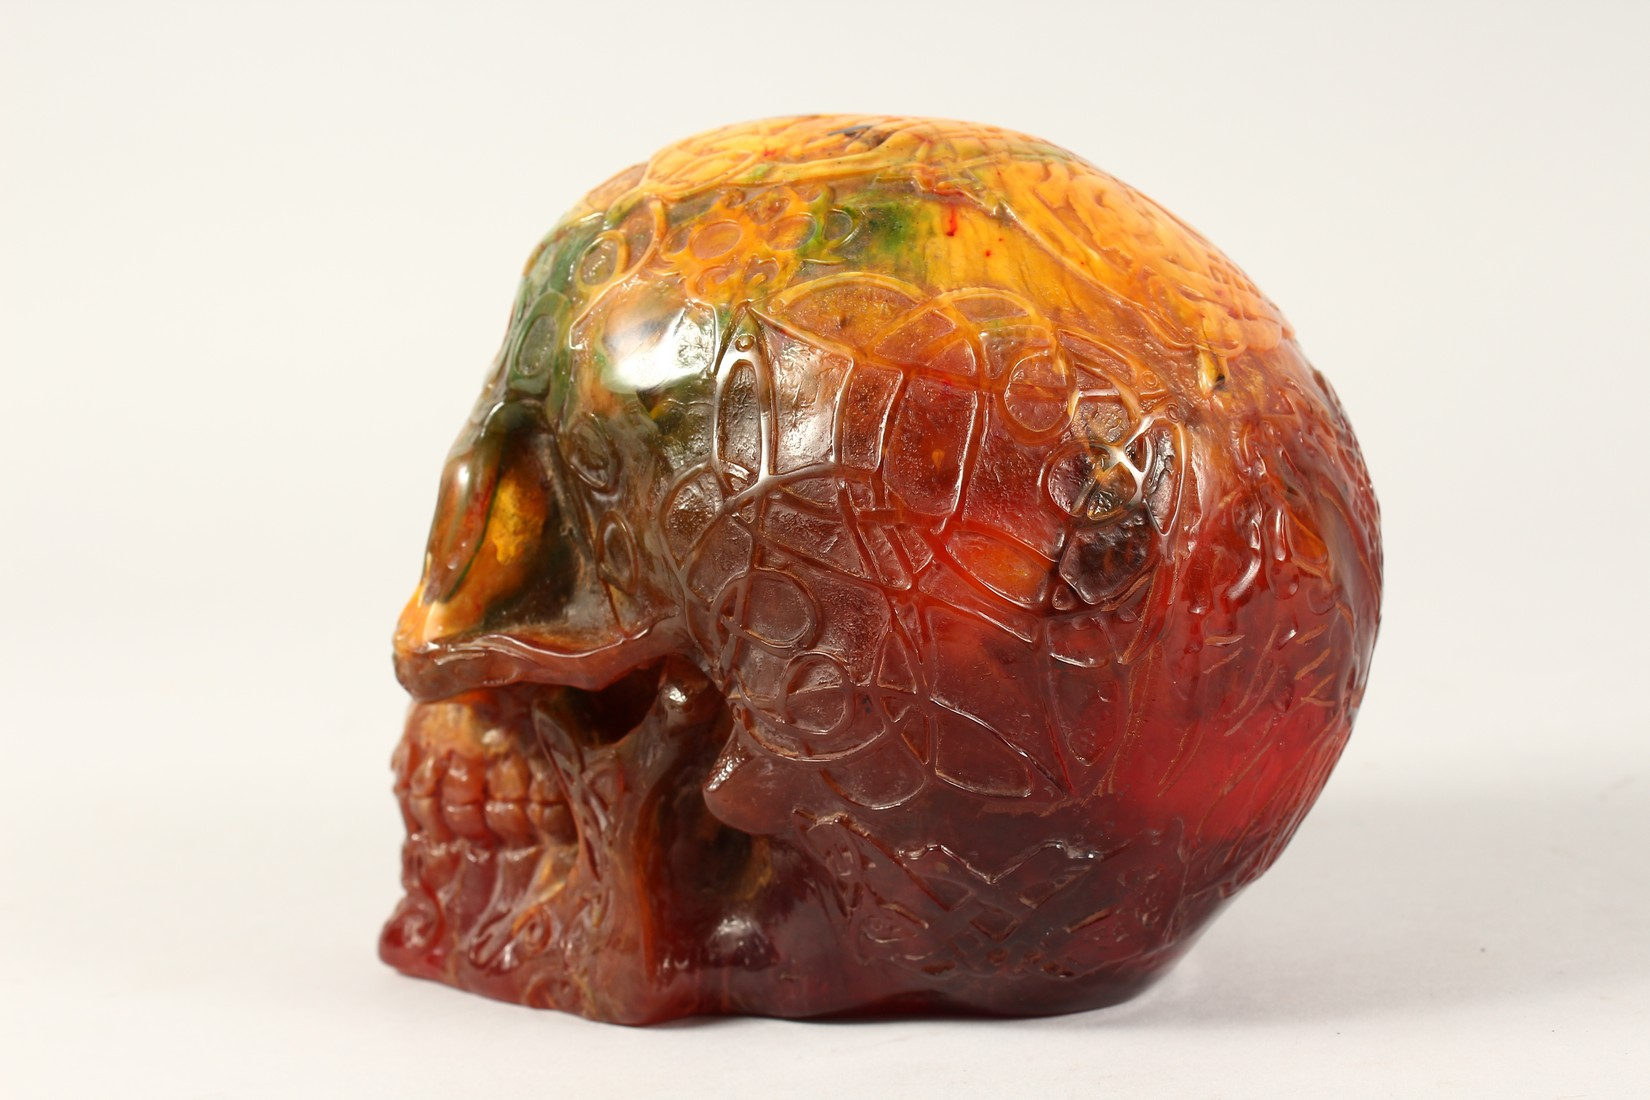 AN AMBER SKULL 6ins long - Image 2 of 2